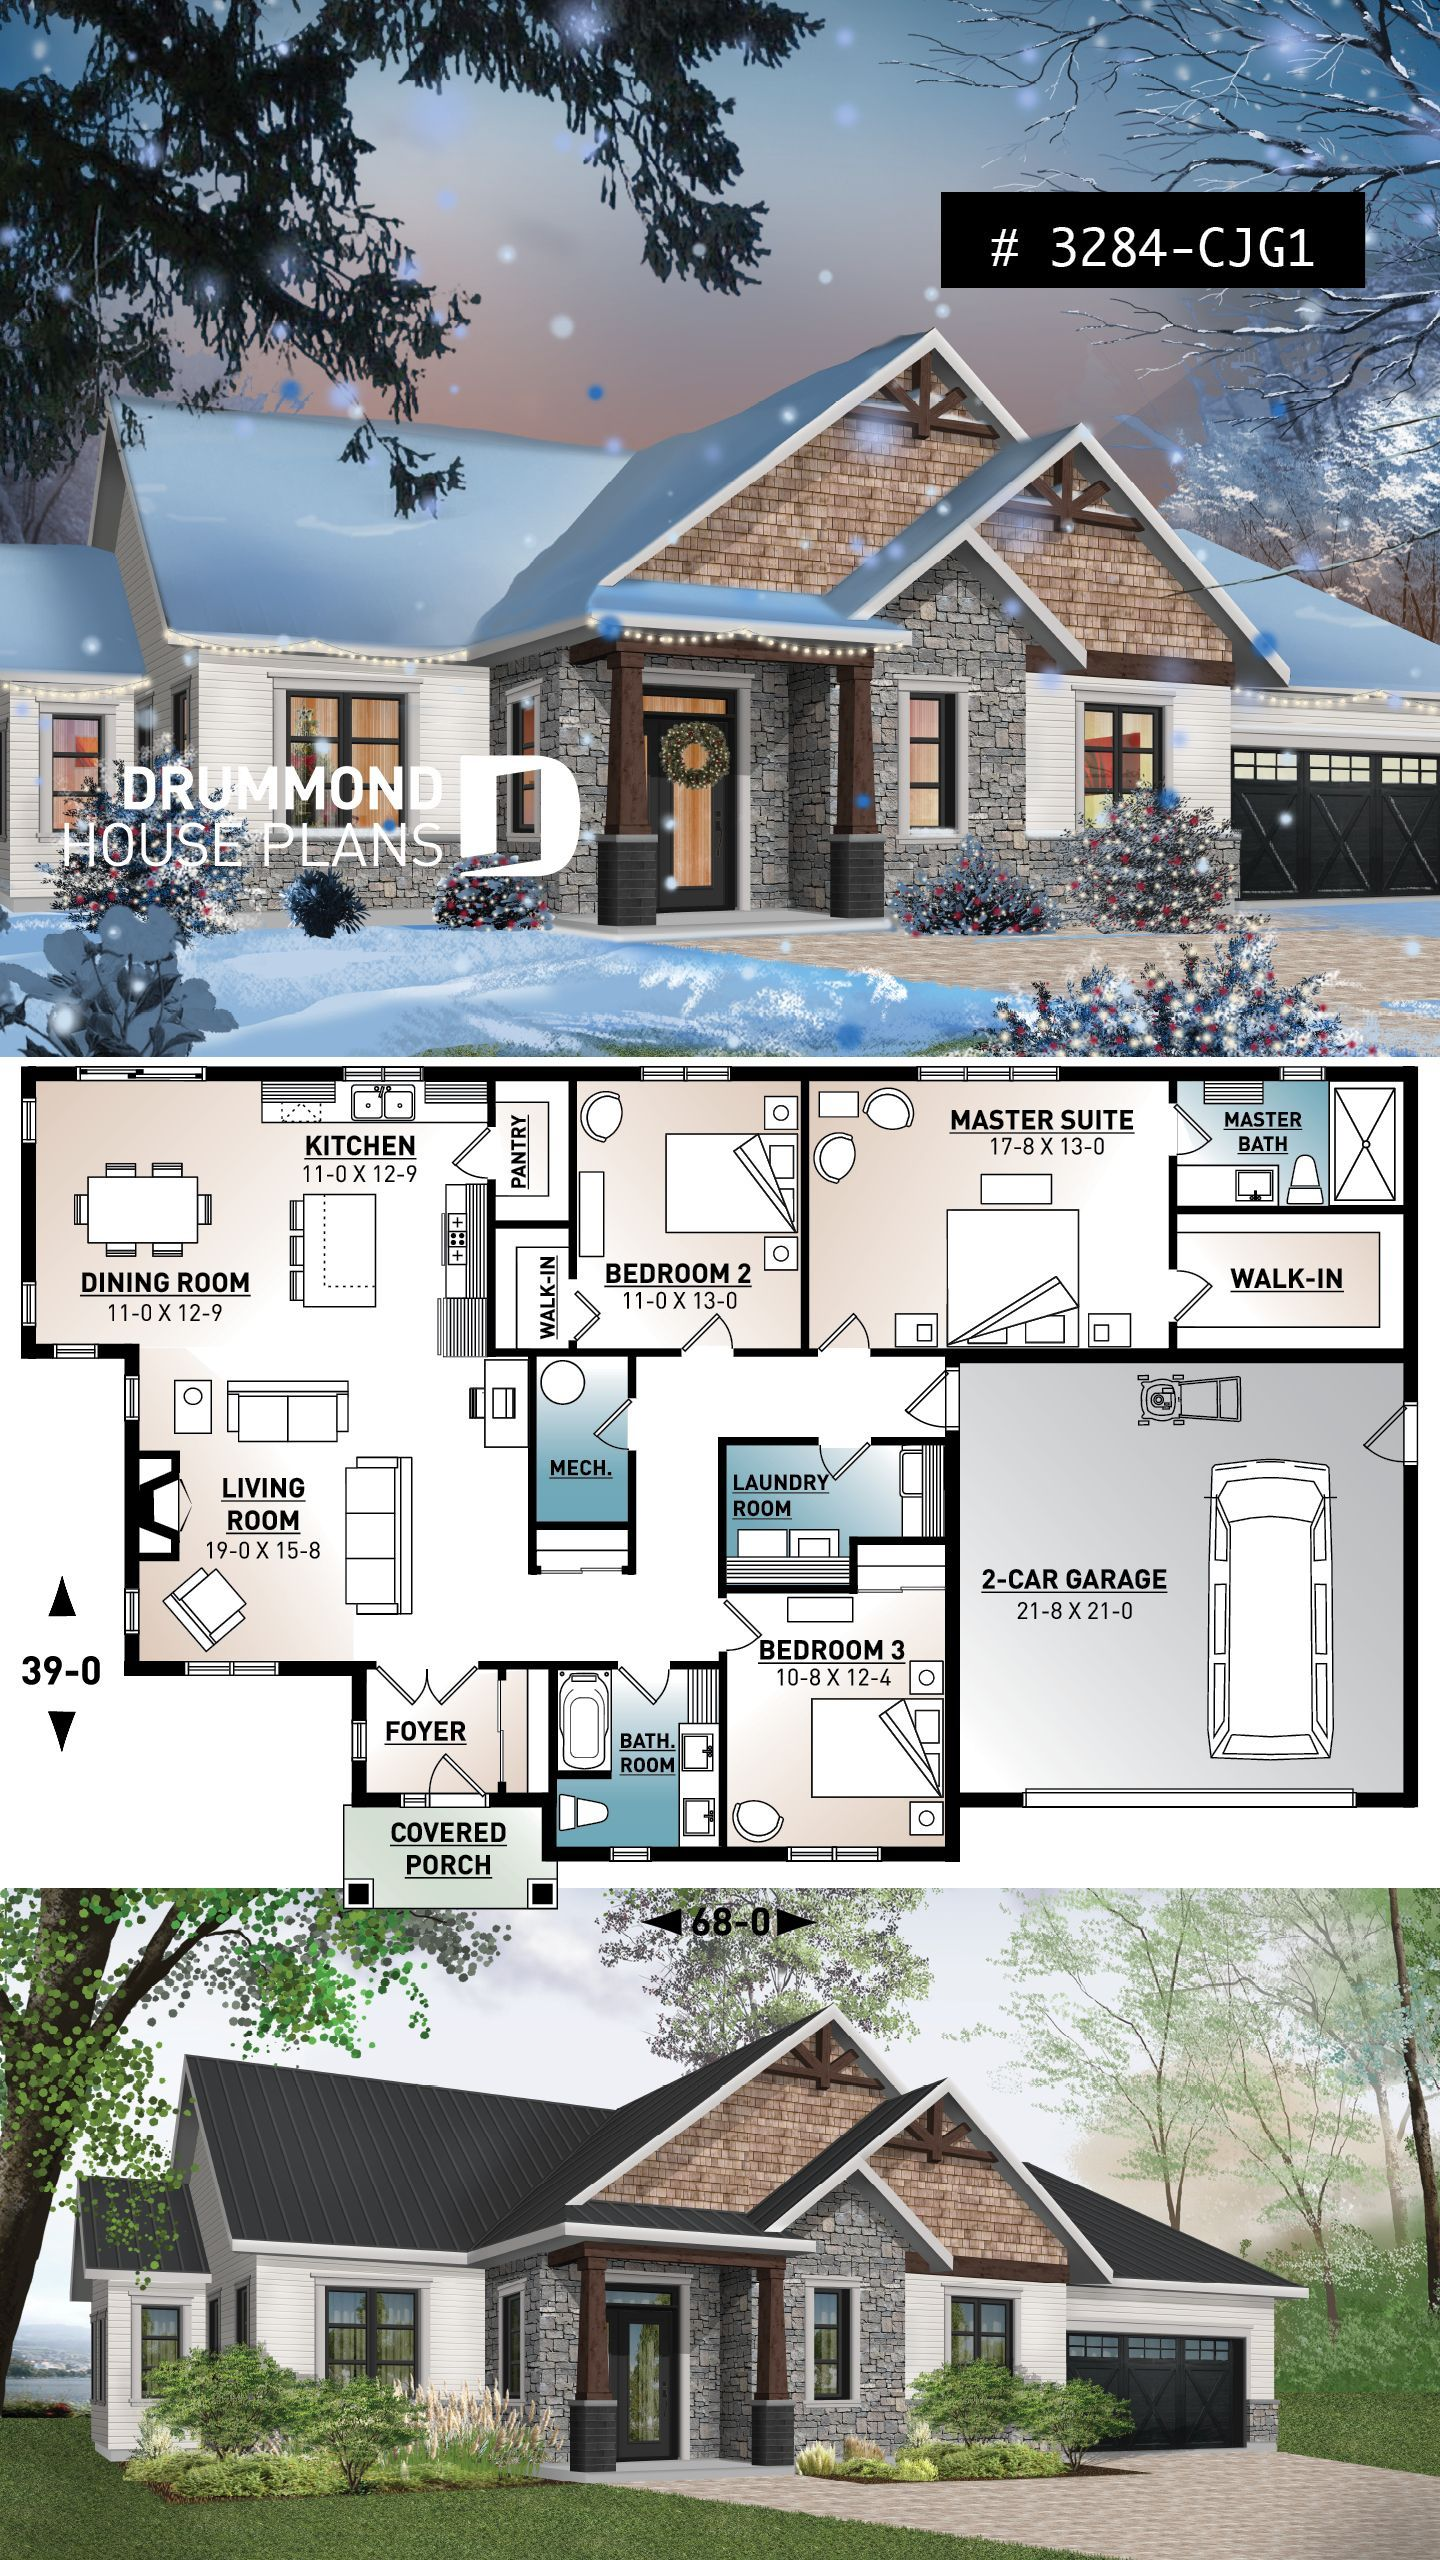 Extraordinary Home Plans And Designs For Your Dream Home Ideas In 2020 Sims House Plans House Plans House Blueprints